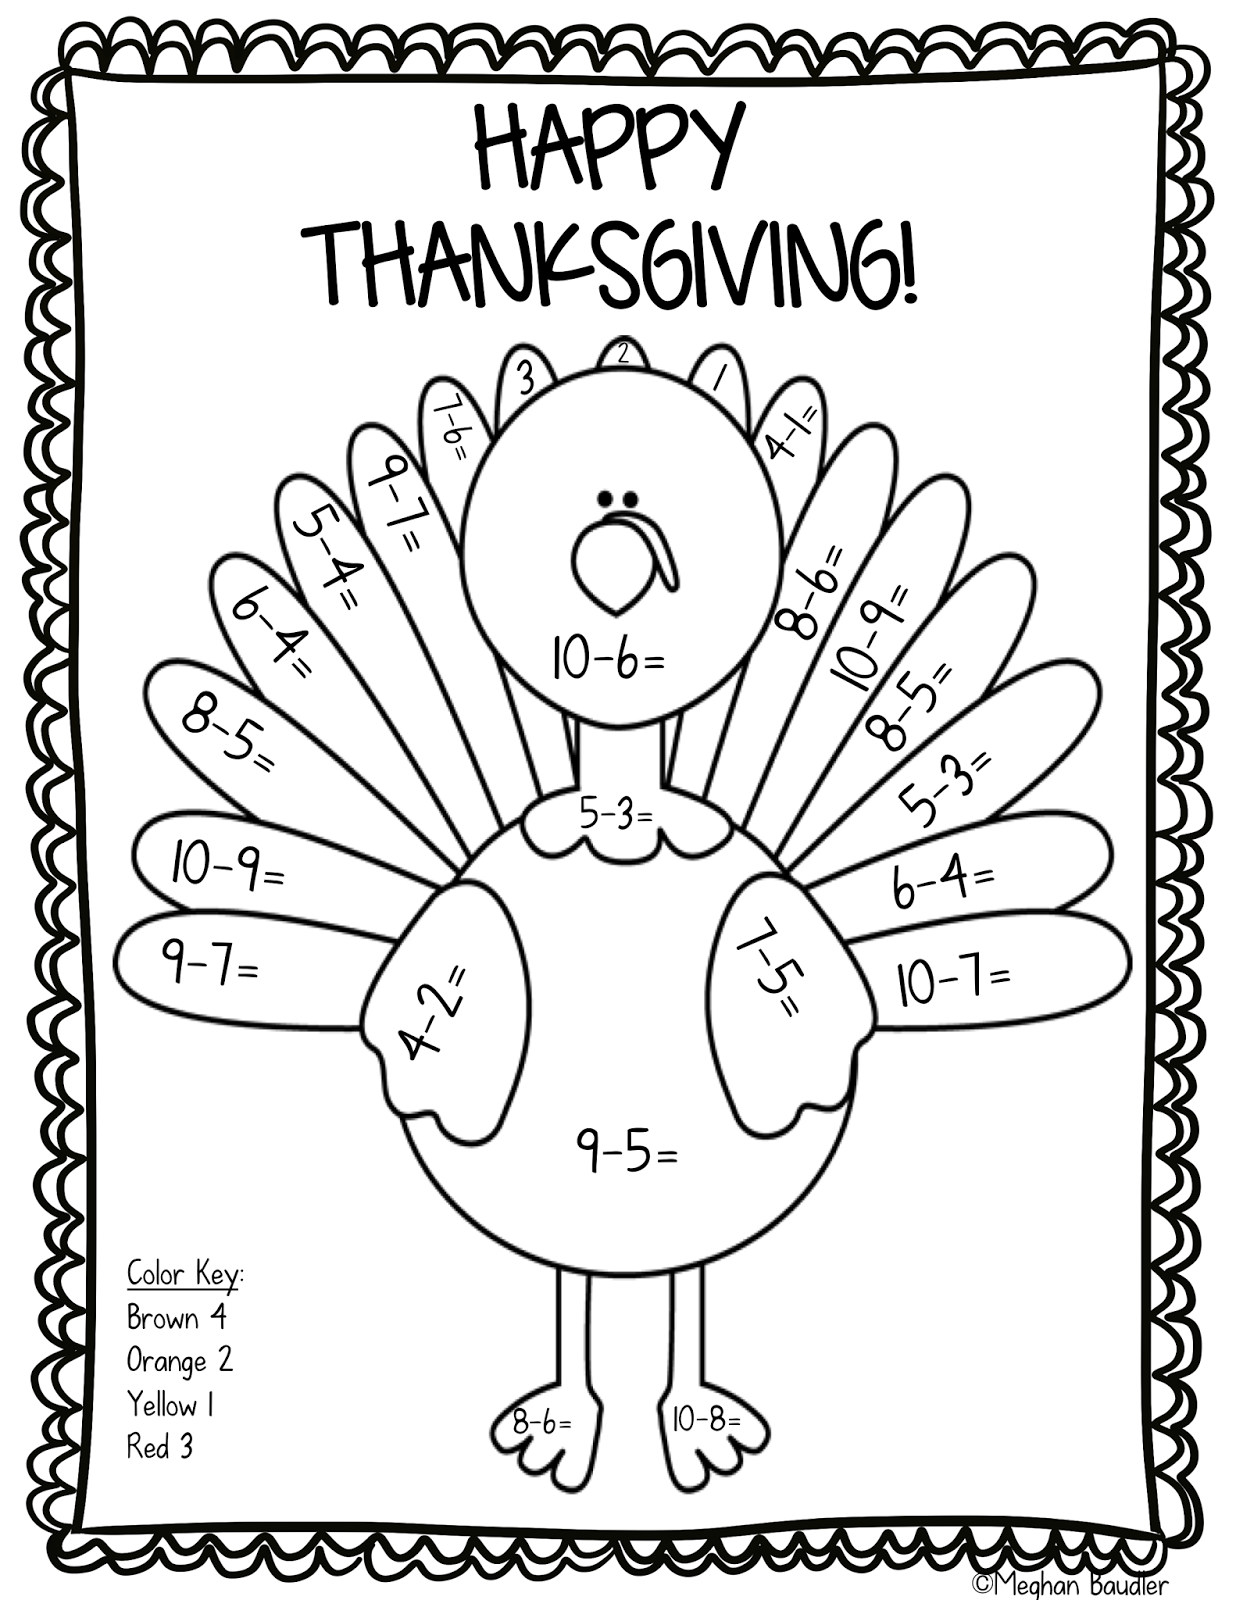 17 Printable Color By Number Turkey KittyBabyLove